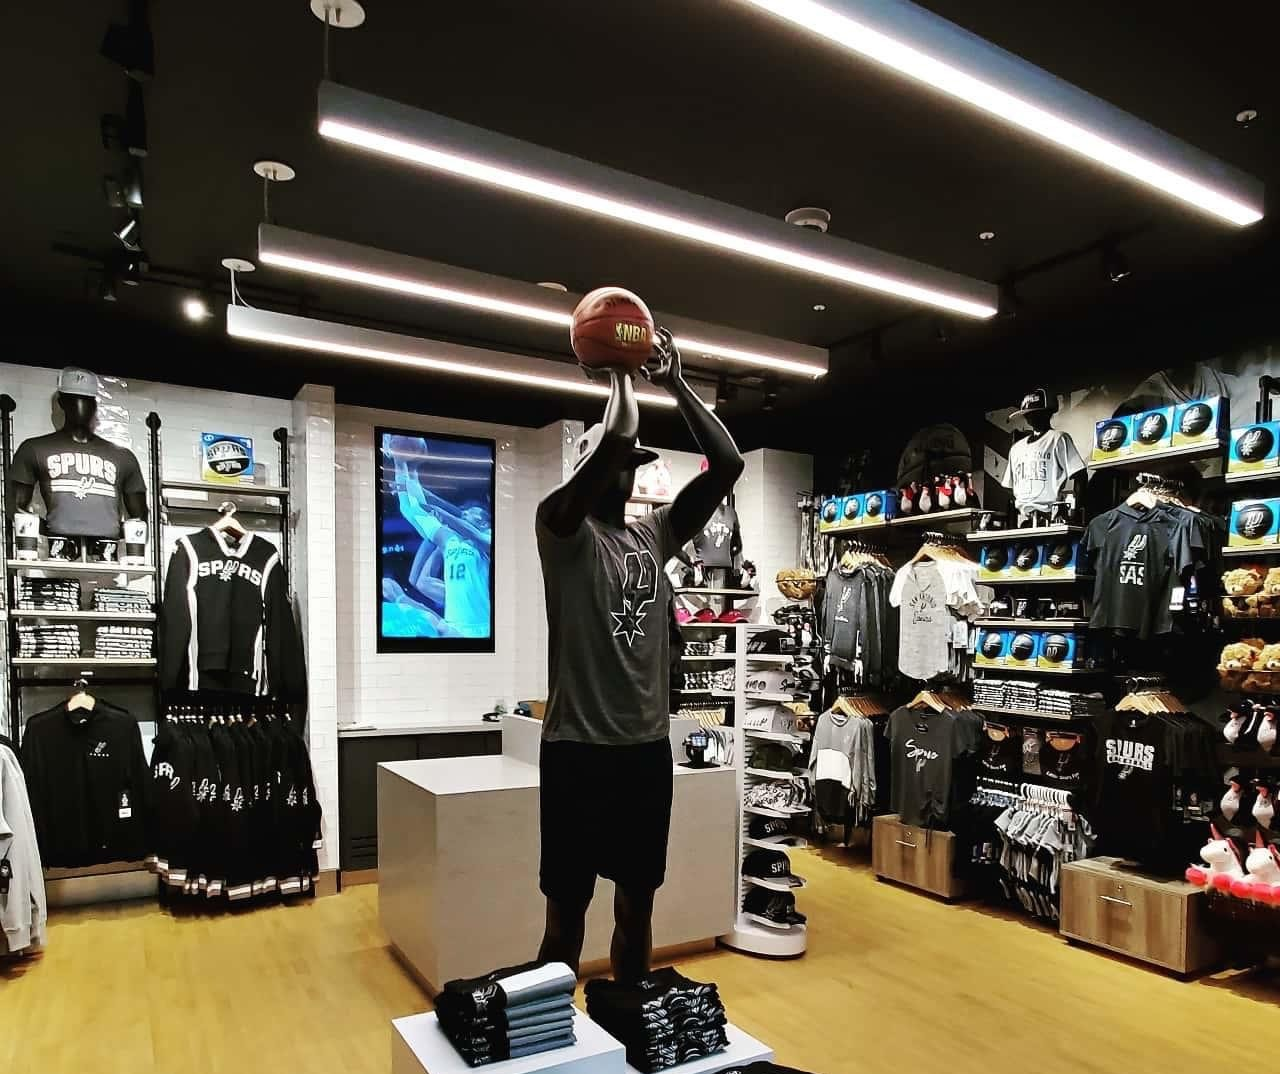 Retail store for San Antonio spurs showing items for sale